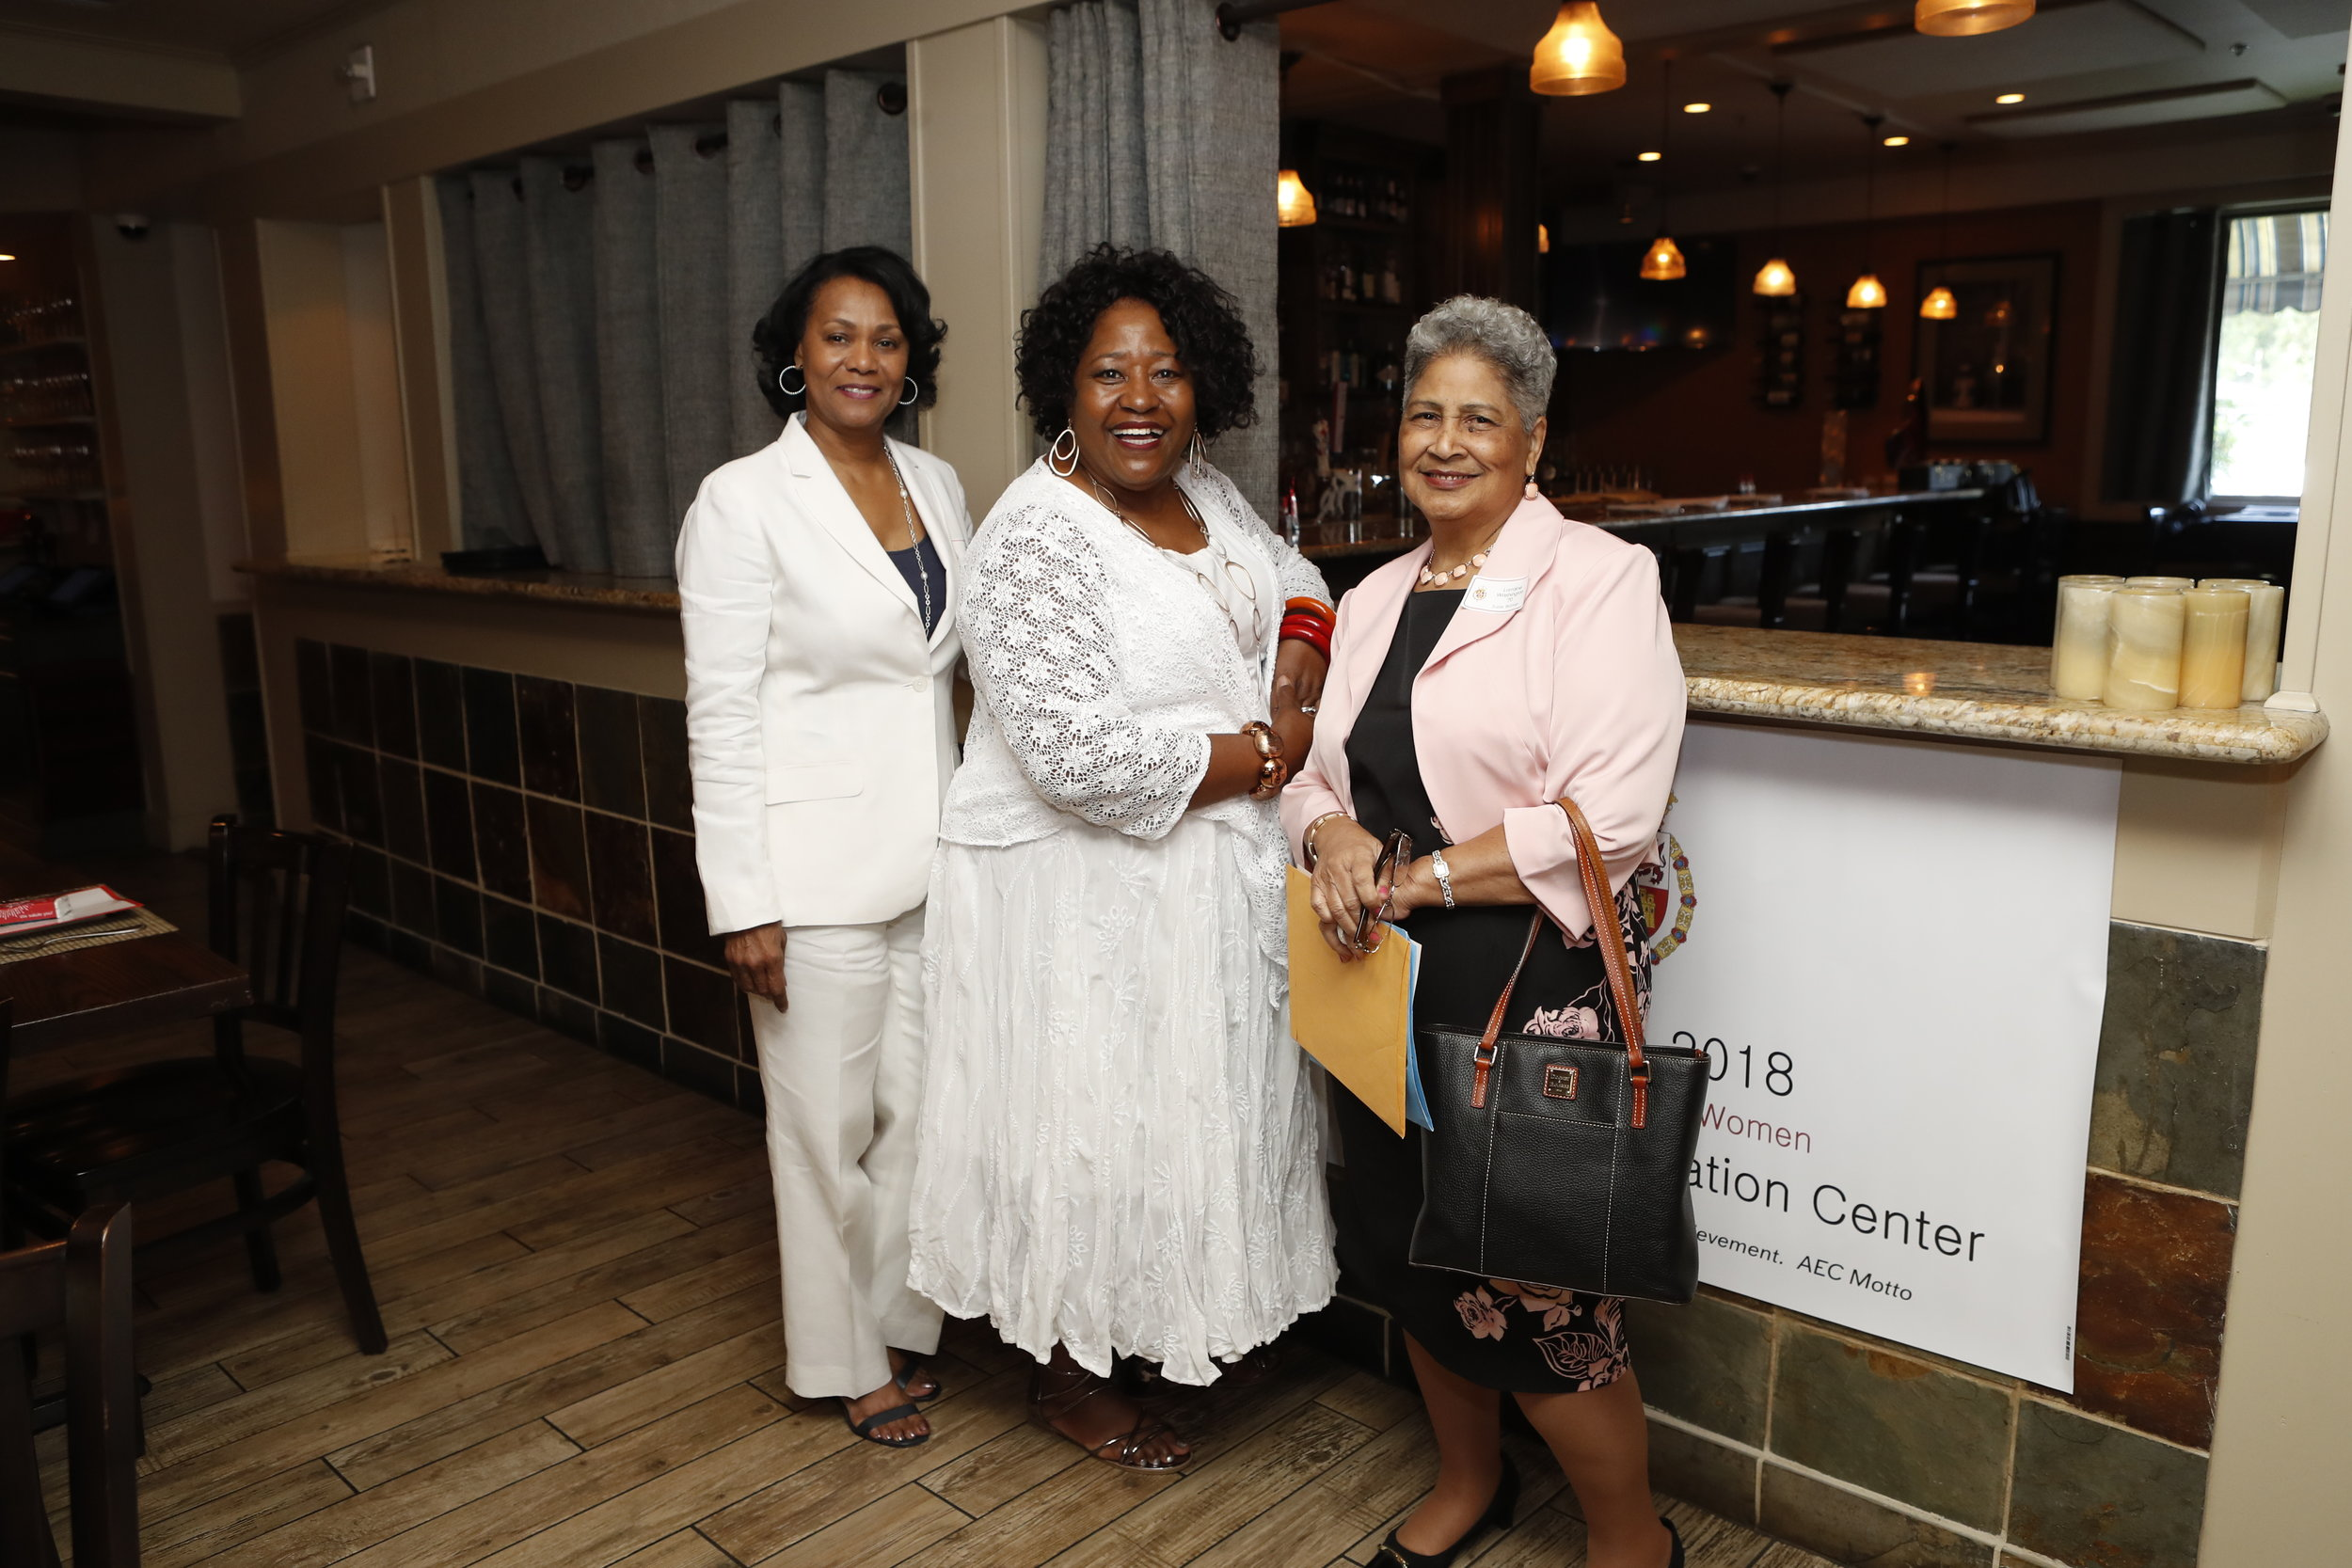 Linda Phoenix Teamer, Connie Nevels-Payton and Lorraine Washington